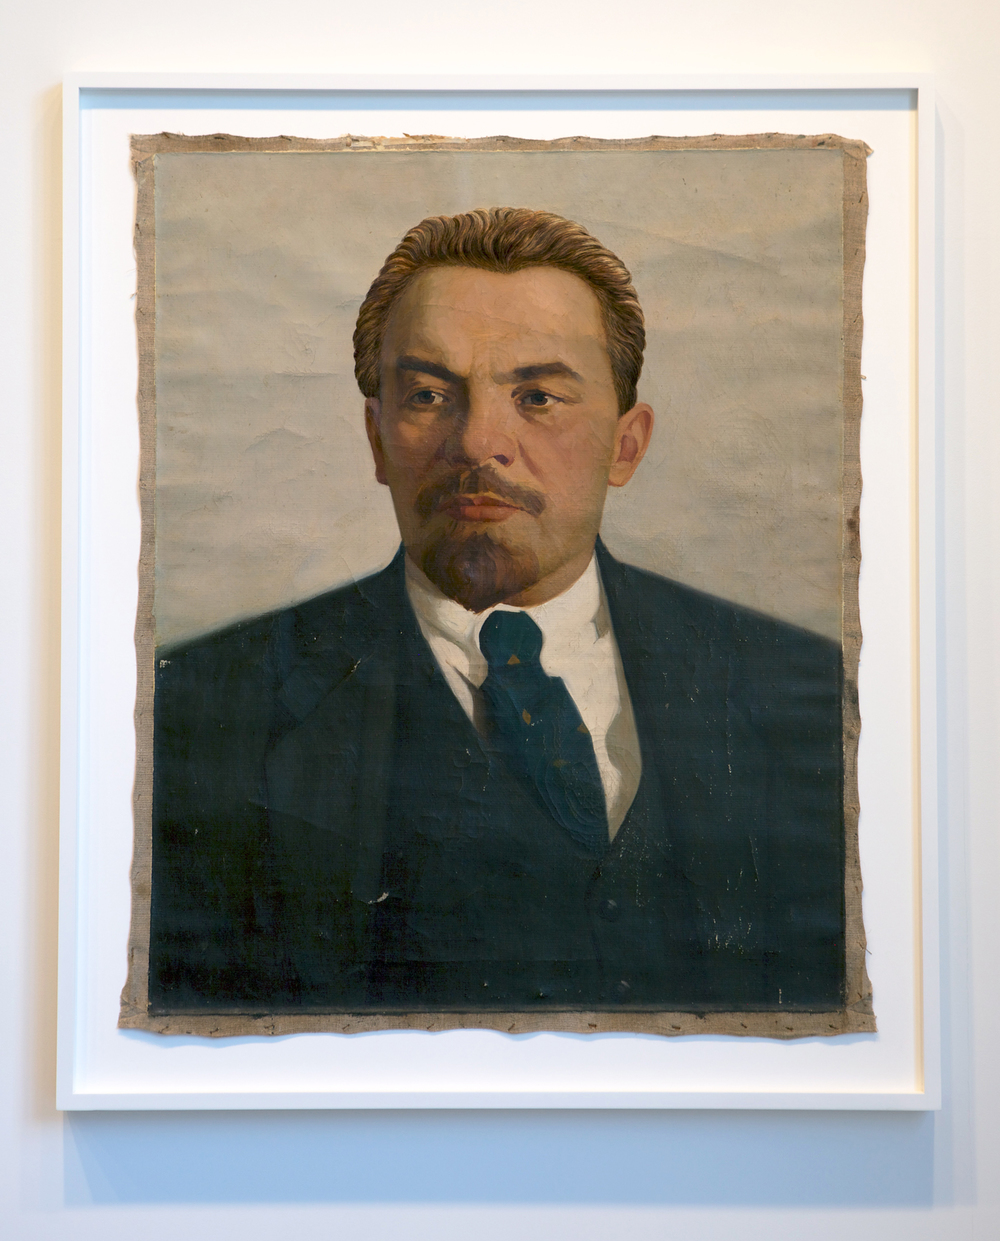 The Propeller Group   Lenin as Cobb in Inception  , 2013   oil and embroidery on canvas   47 x 39.75 inches   119.4 x 101 cm